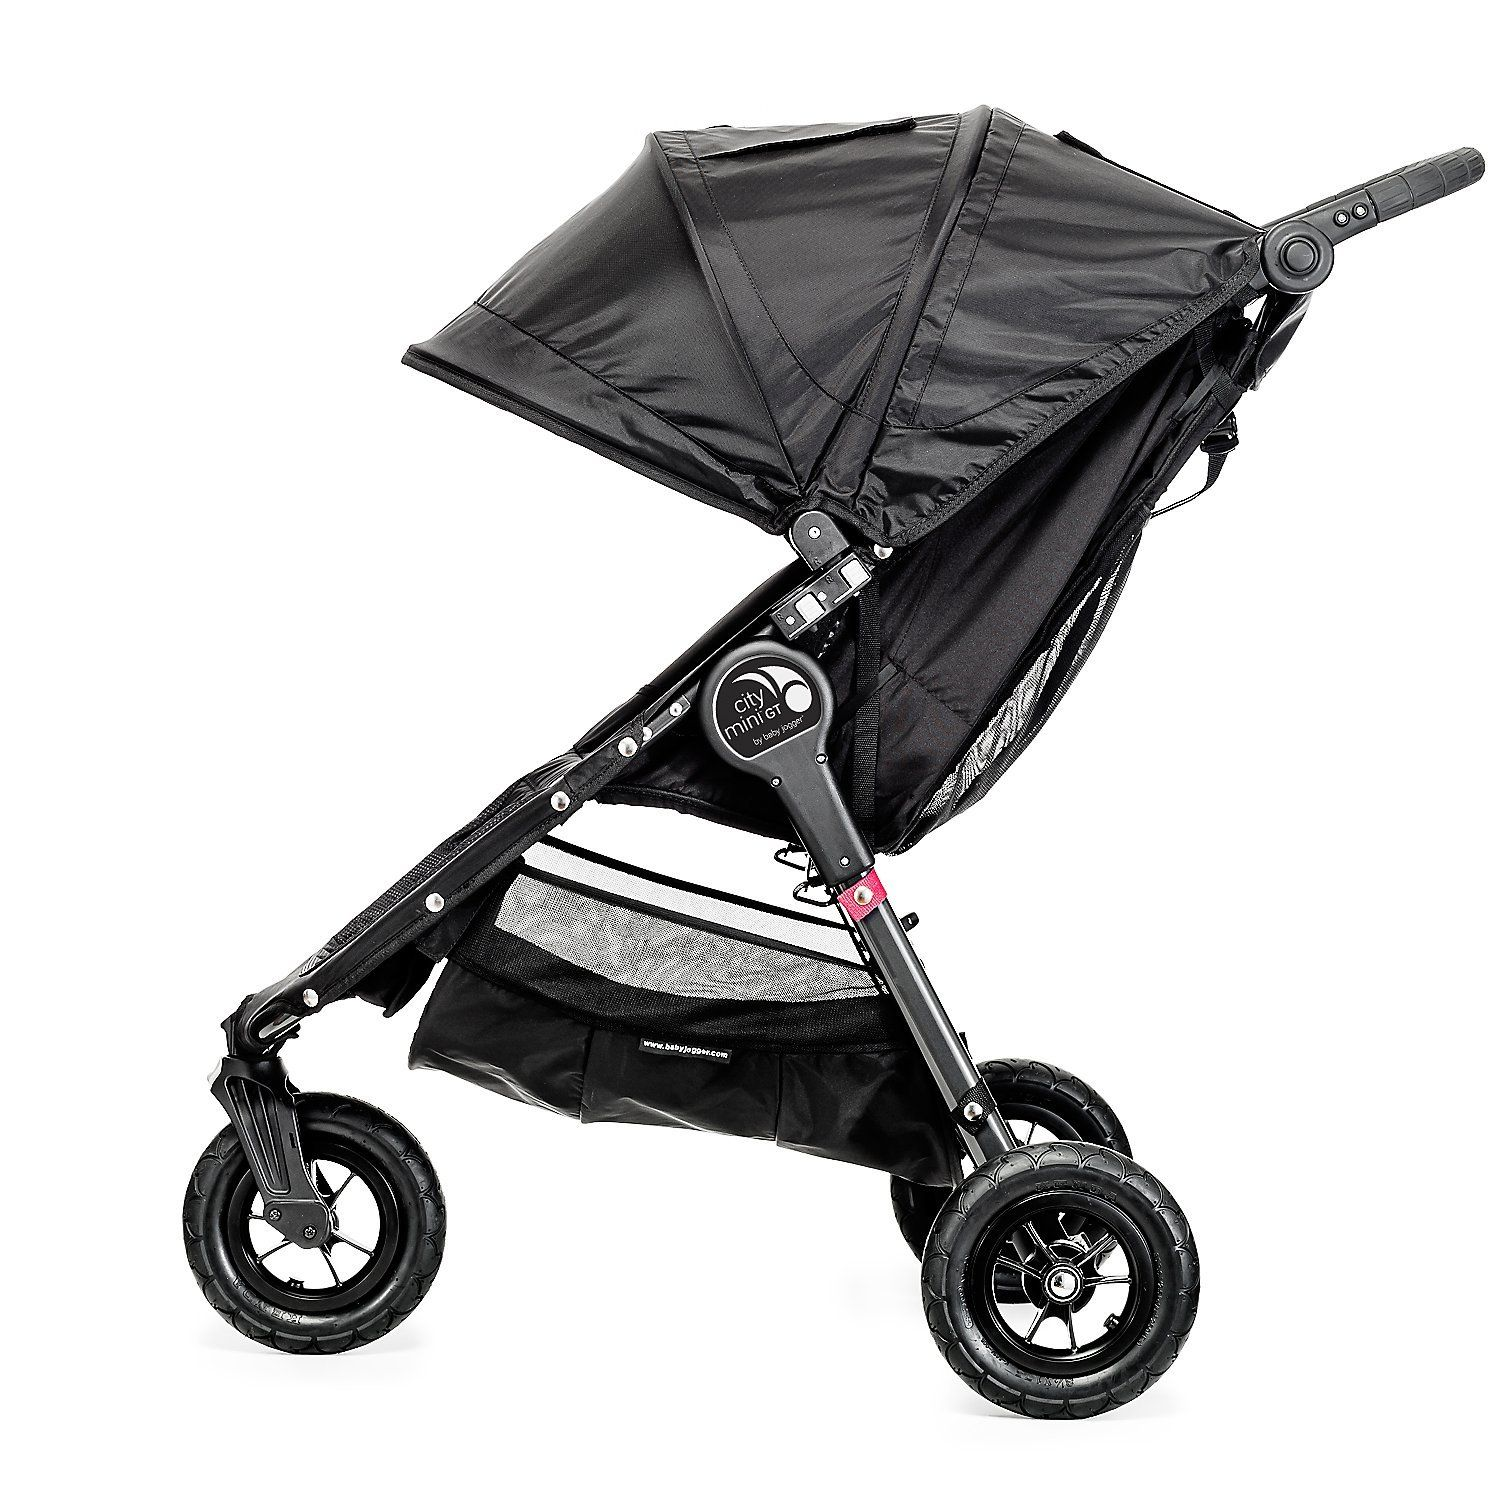 Graco Duo Jogging Stroller Best Jogging Stroller Travel System In 2020 – Do You Need